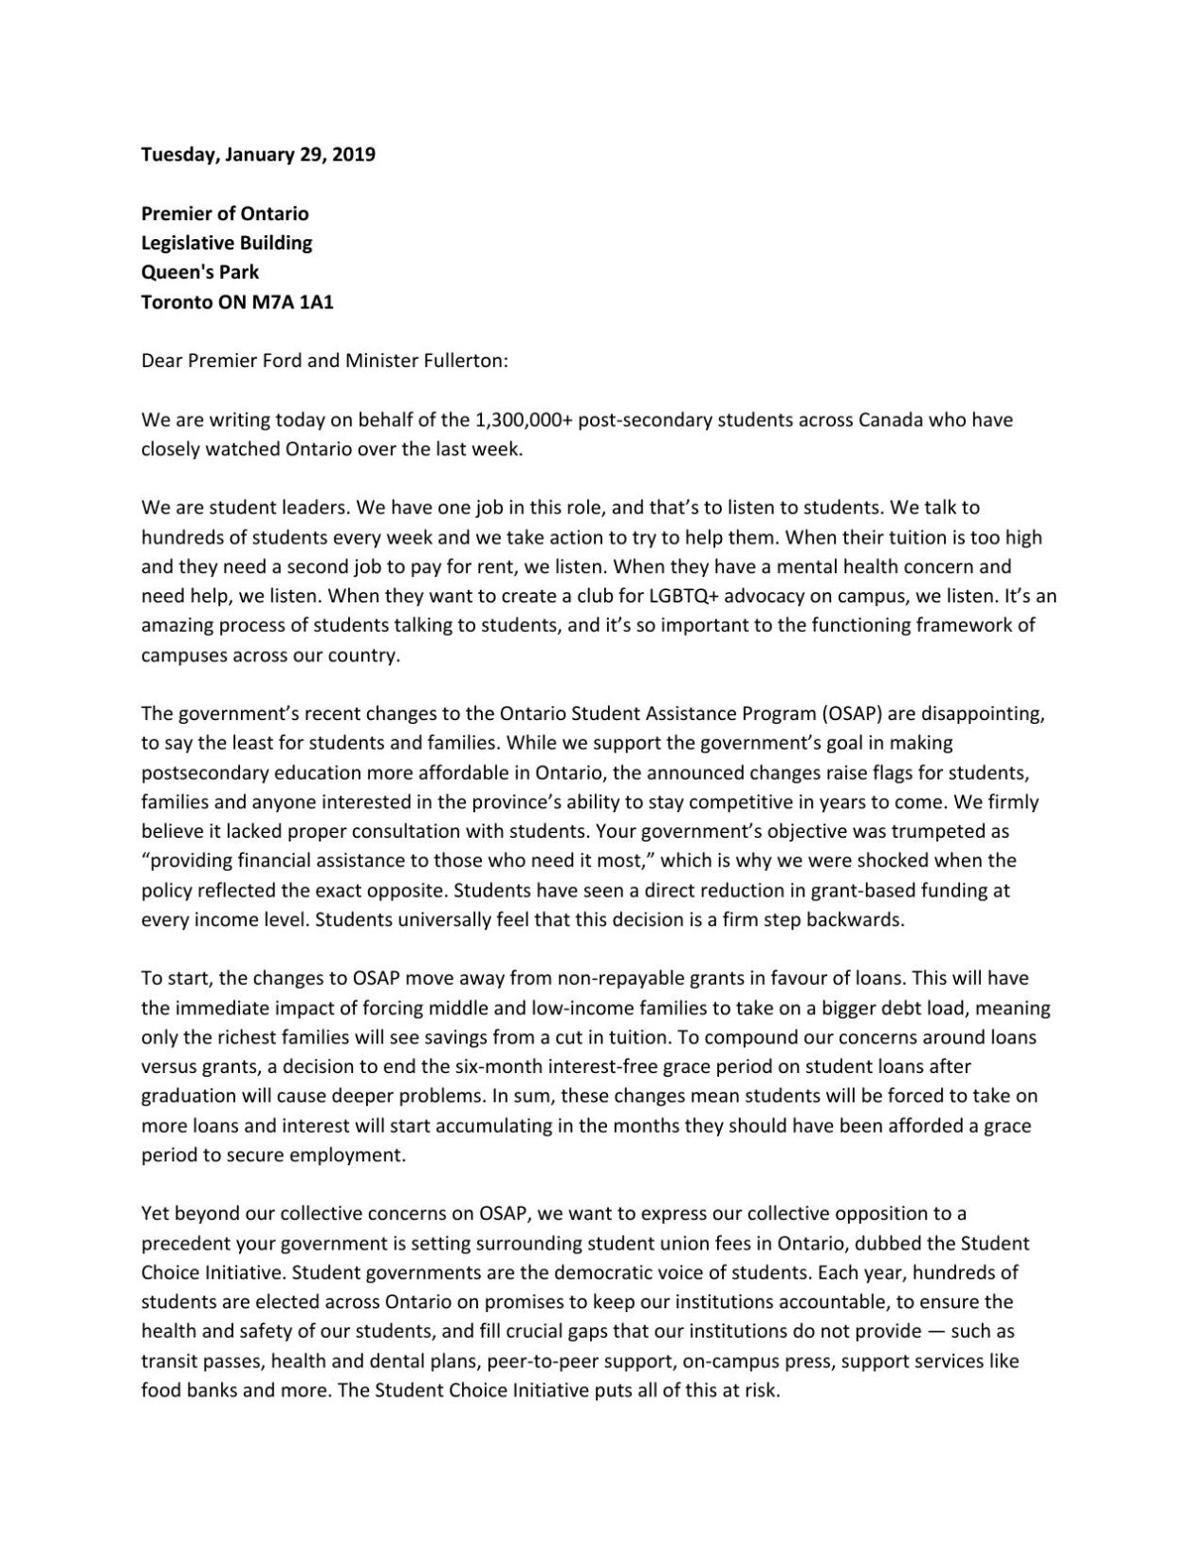 Students Choice National Letter.pdf